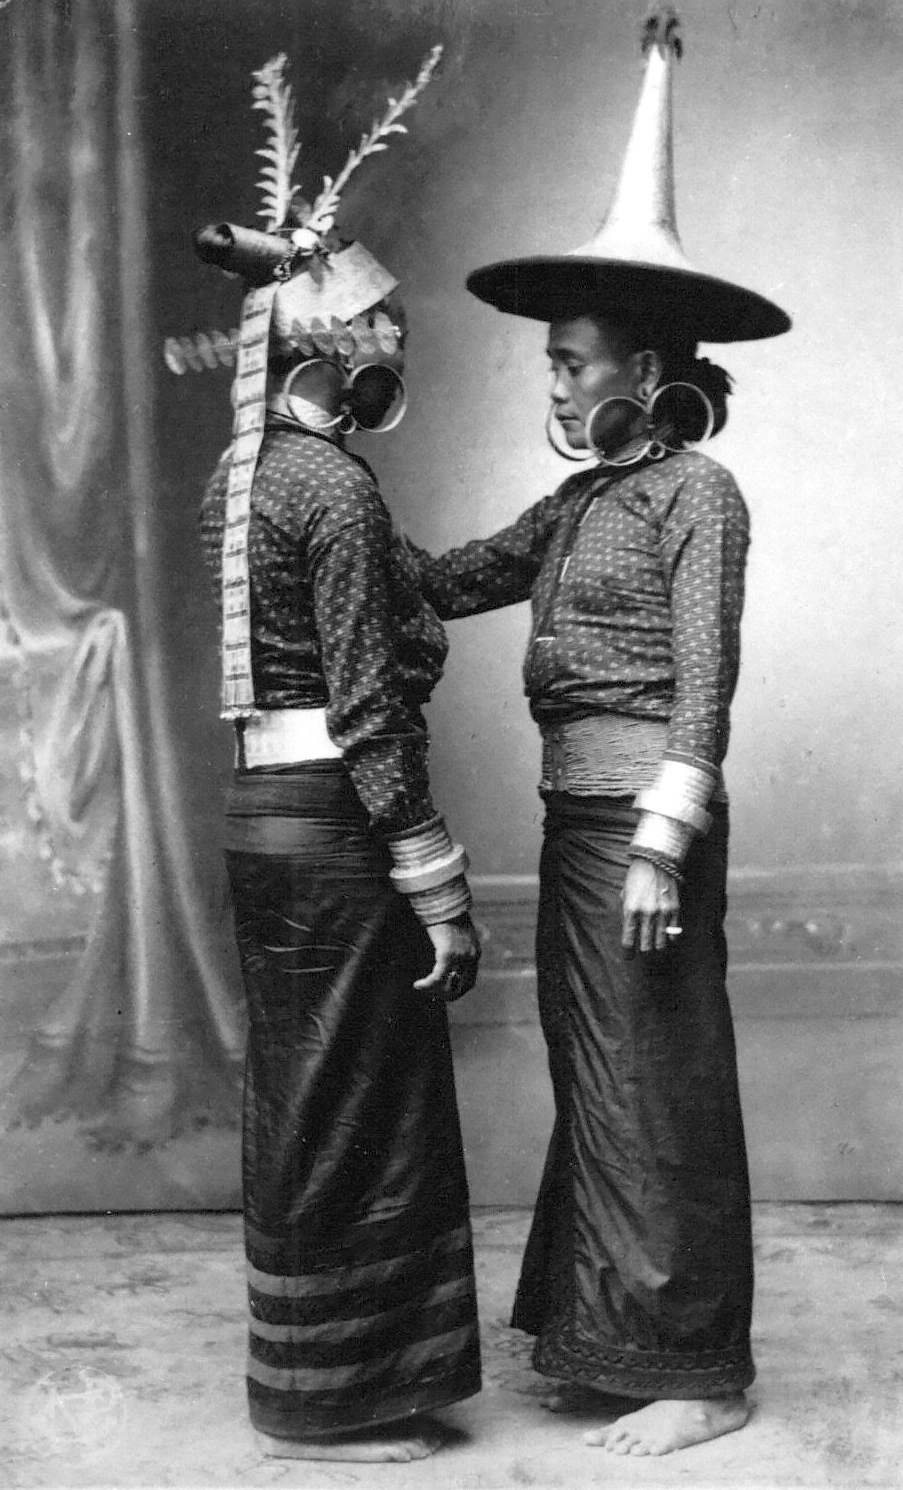 Noblewomen from South Nias wearing  töla jaga  bracelets, gaule earrings and very distinctive golden head ornaments. (Photograph C.B. Nieuwenhuis ca. 1915.)